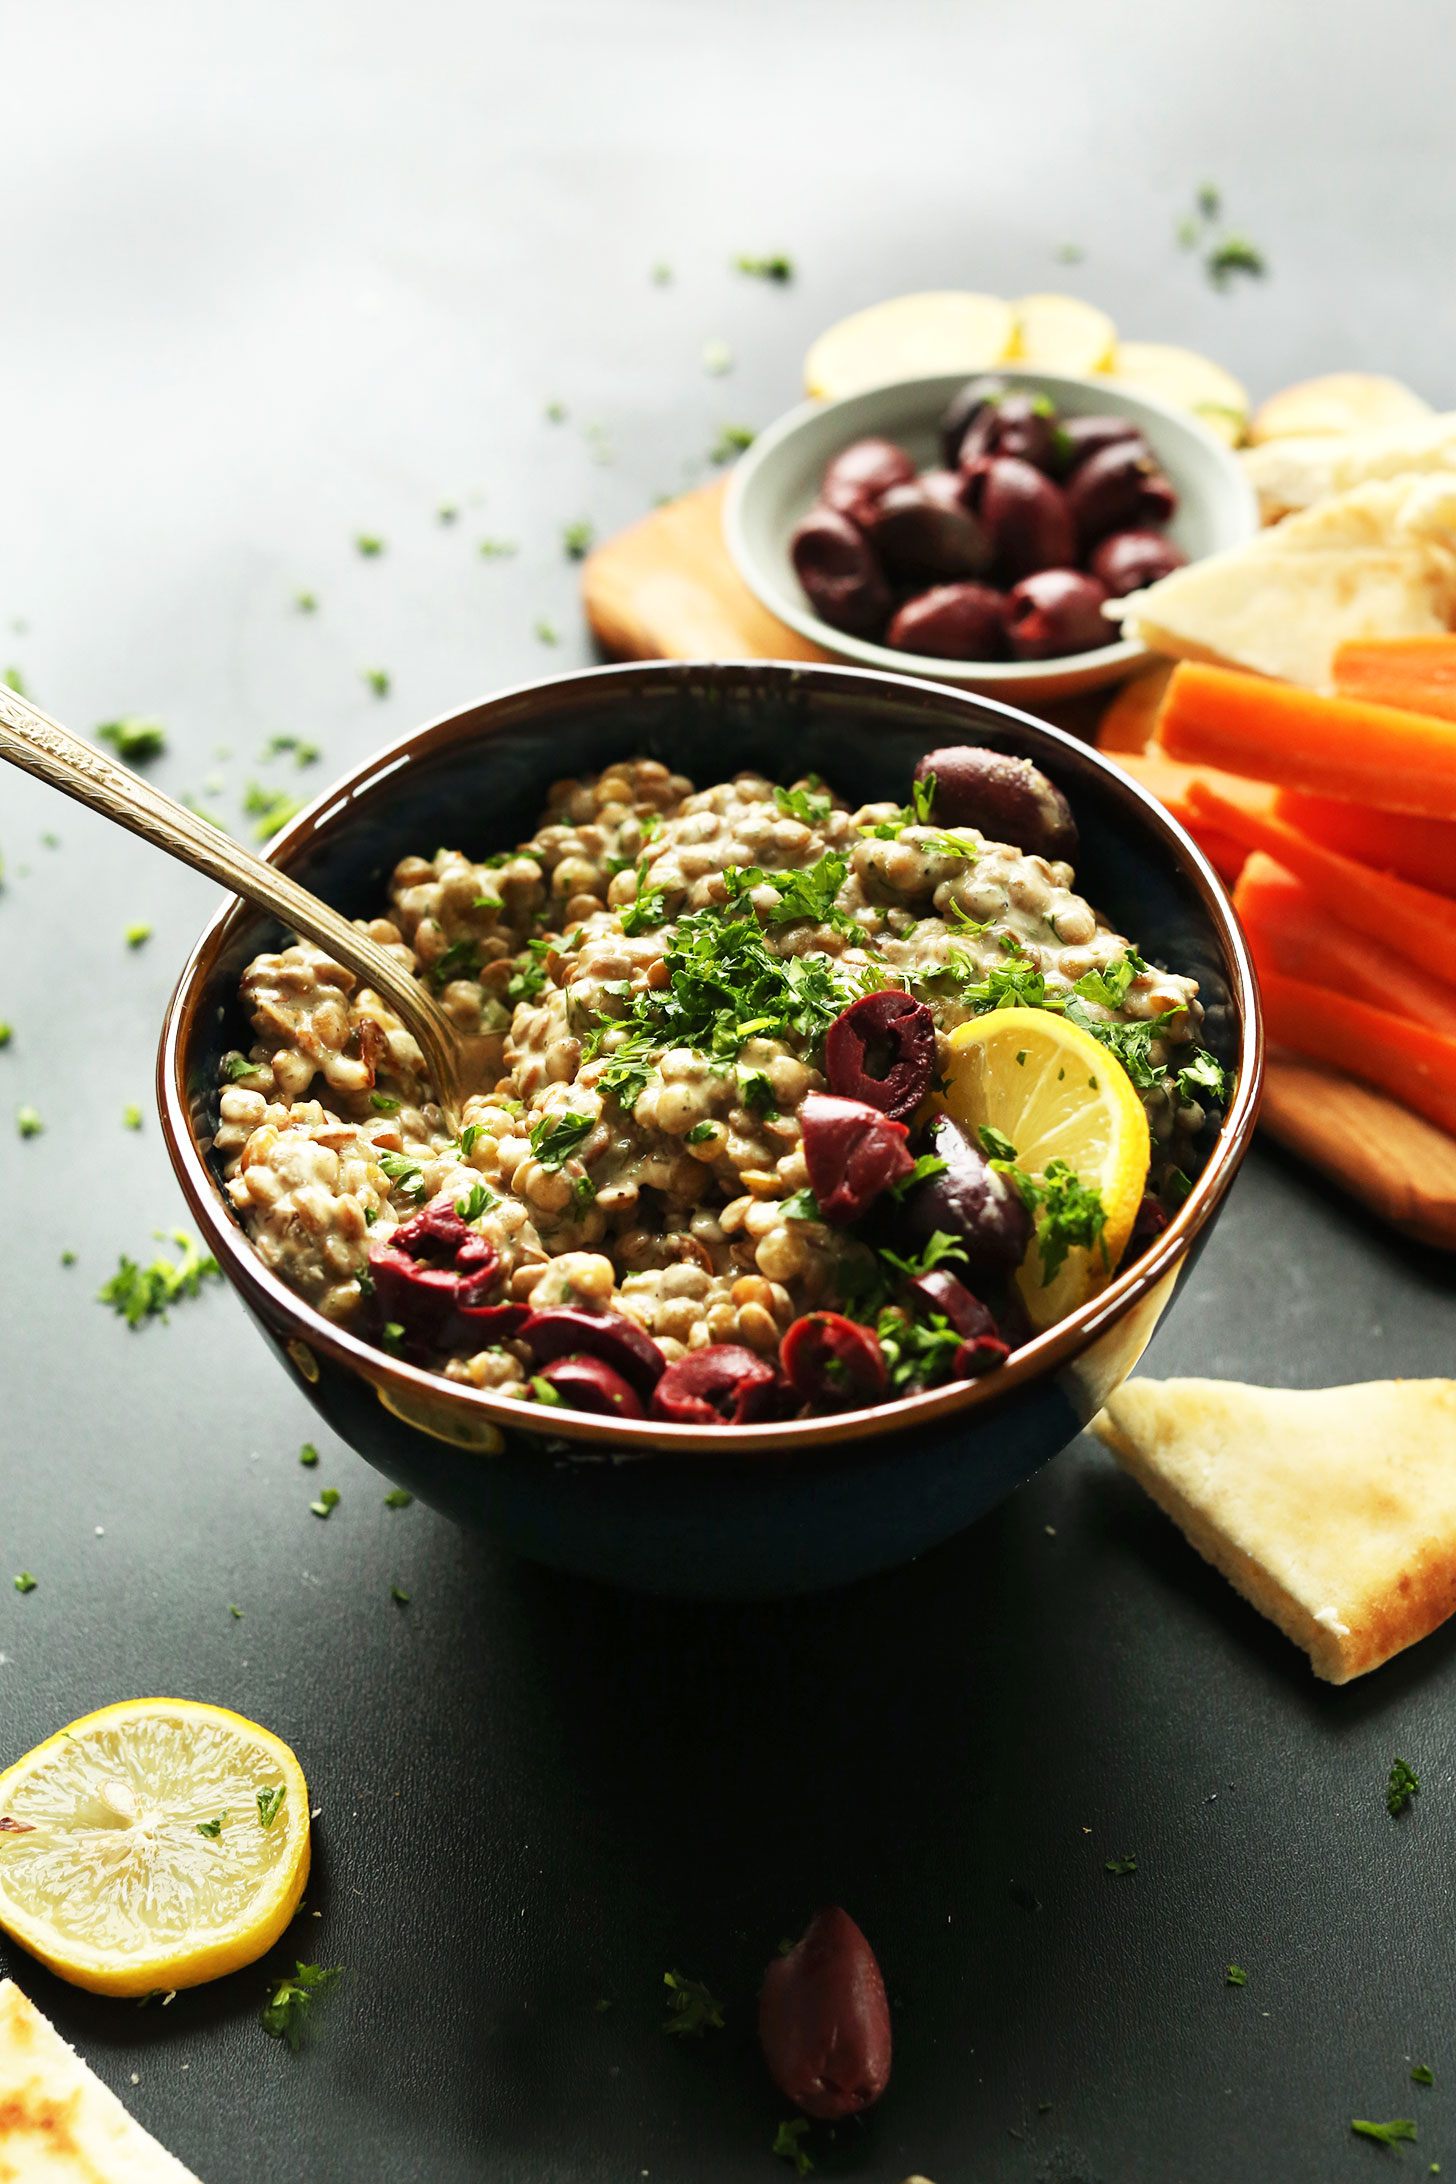 Bowl of our flavorful Lentil Dip recipe that makes an excellent plant-based snack